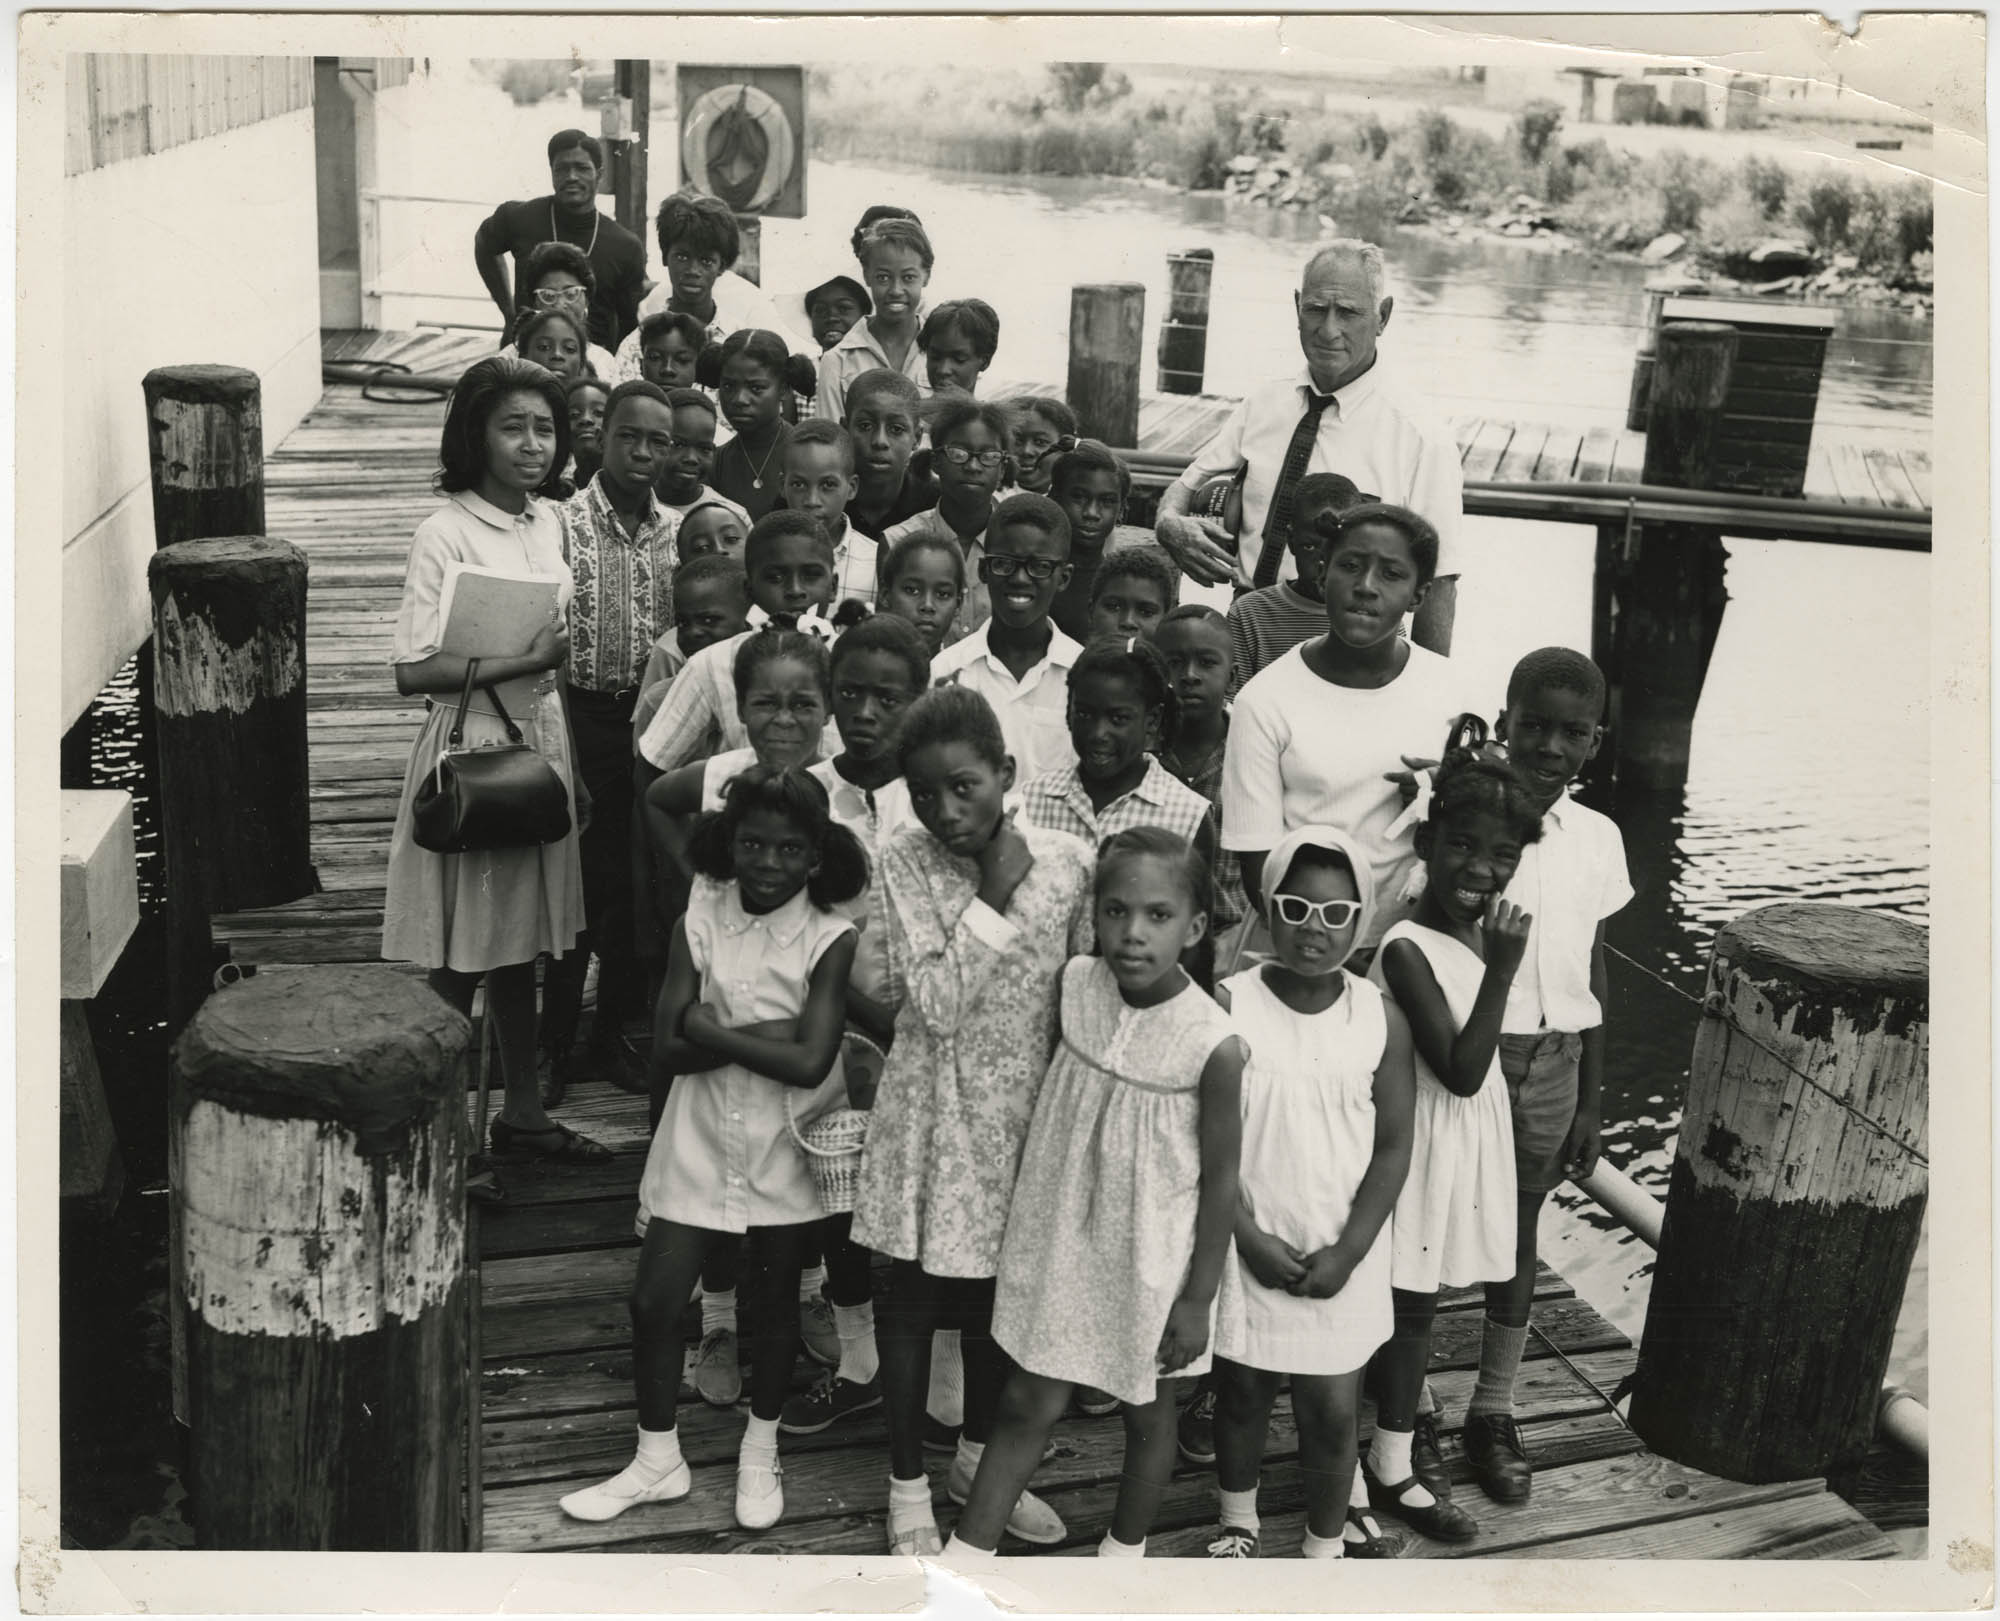 Photograph of Children on a Dock